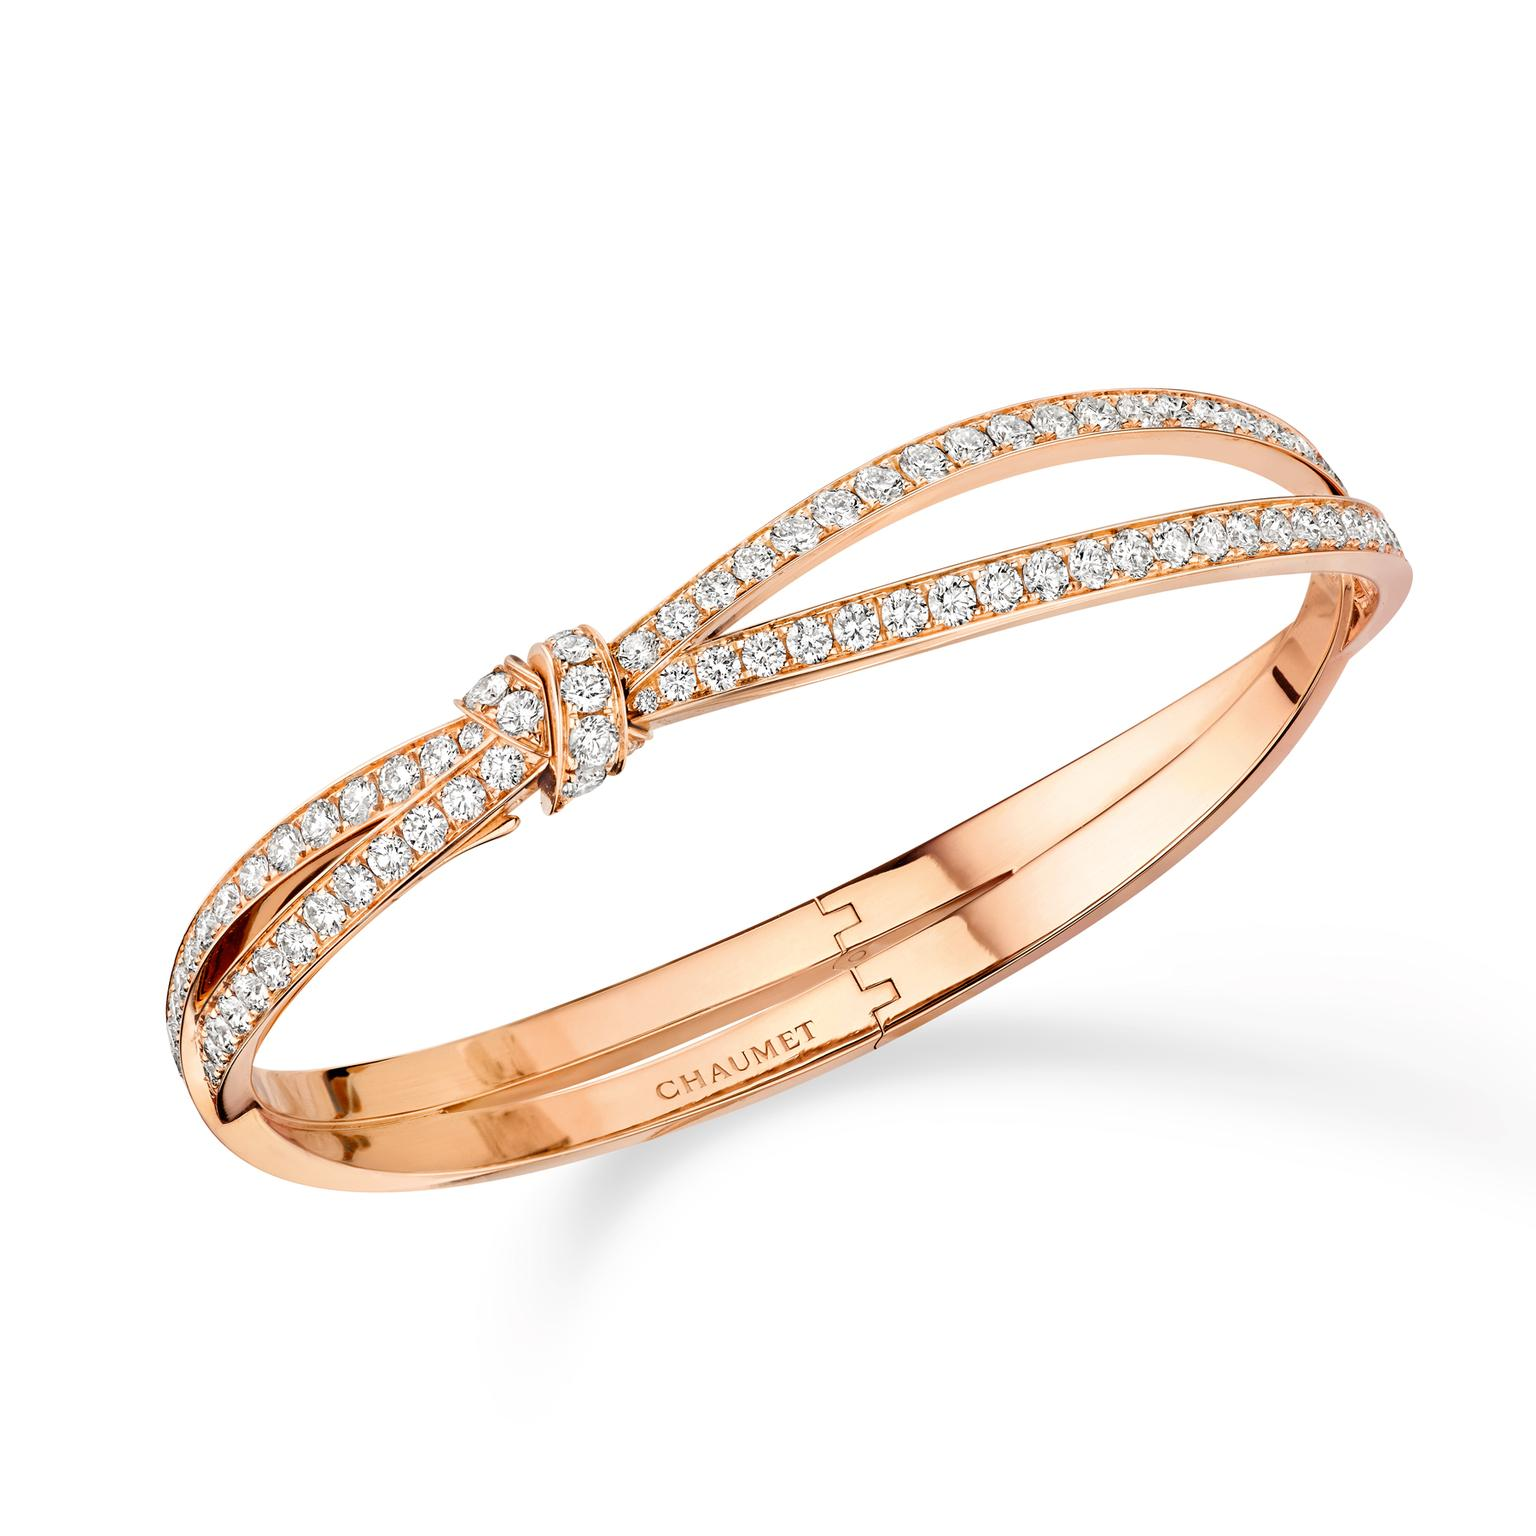 Chaumet Séduction rose gold bracelet with diamonds